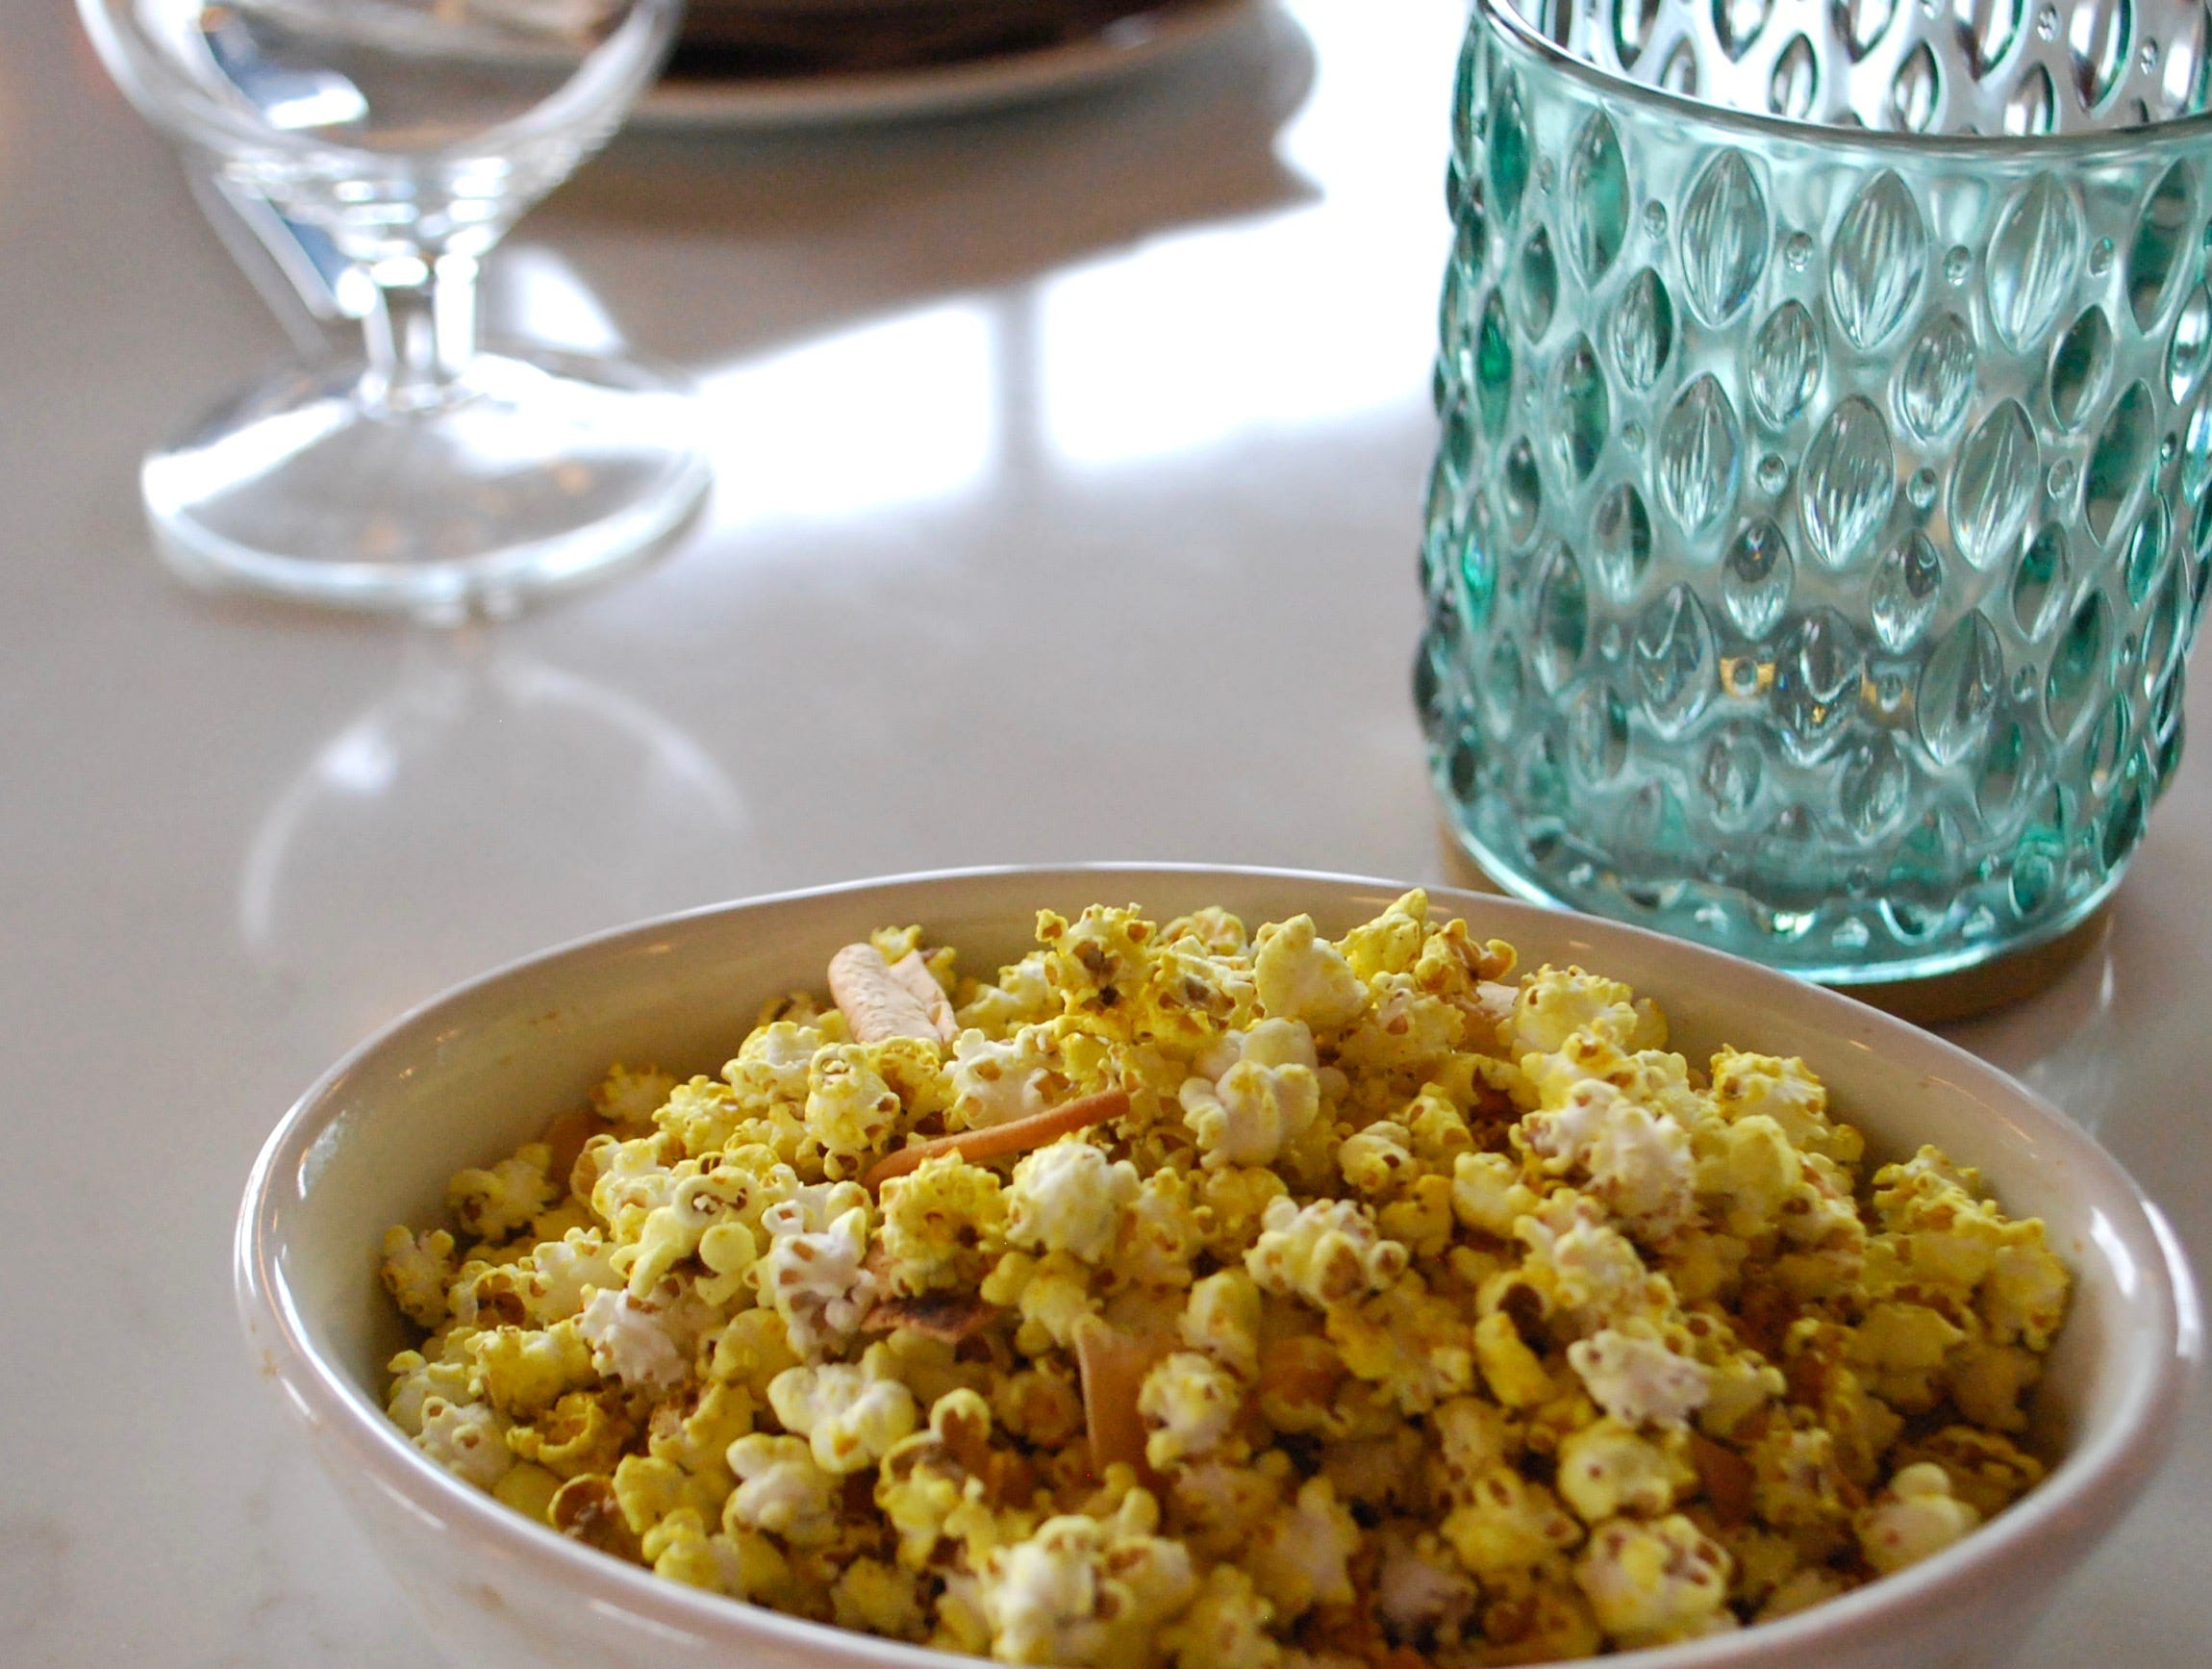 Spiced sorghum popcorn, pappadum and sev mixture.